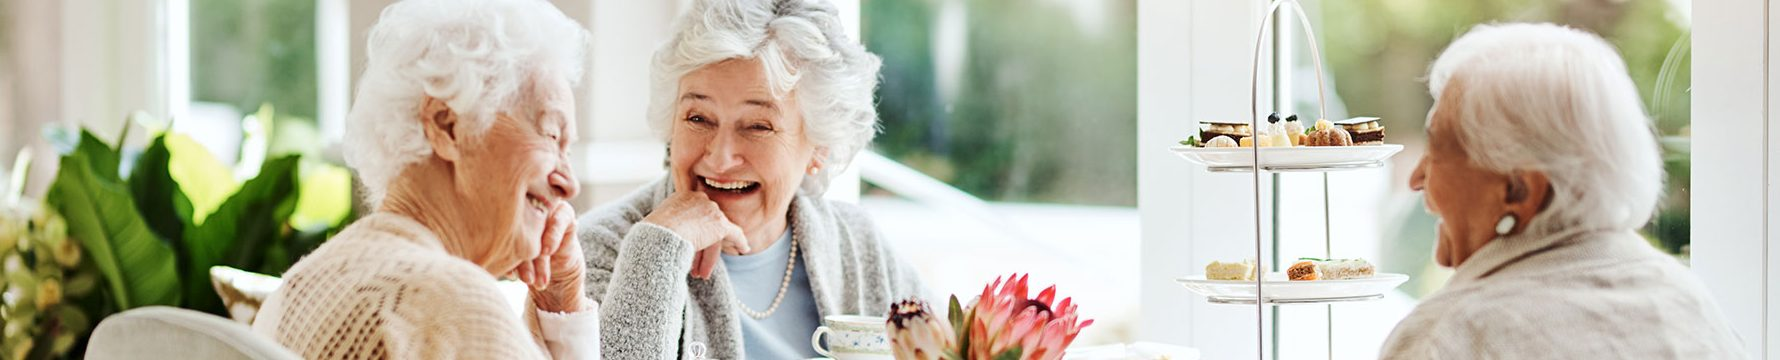 Three elderly women laughing while enjoying tea and pastries